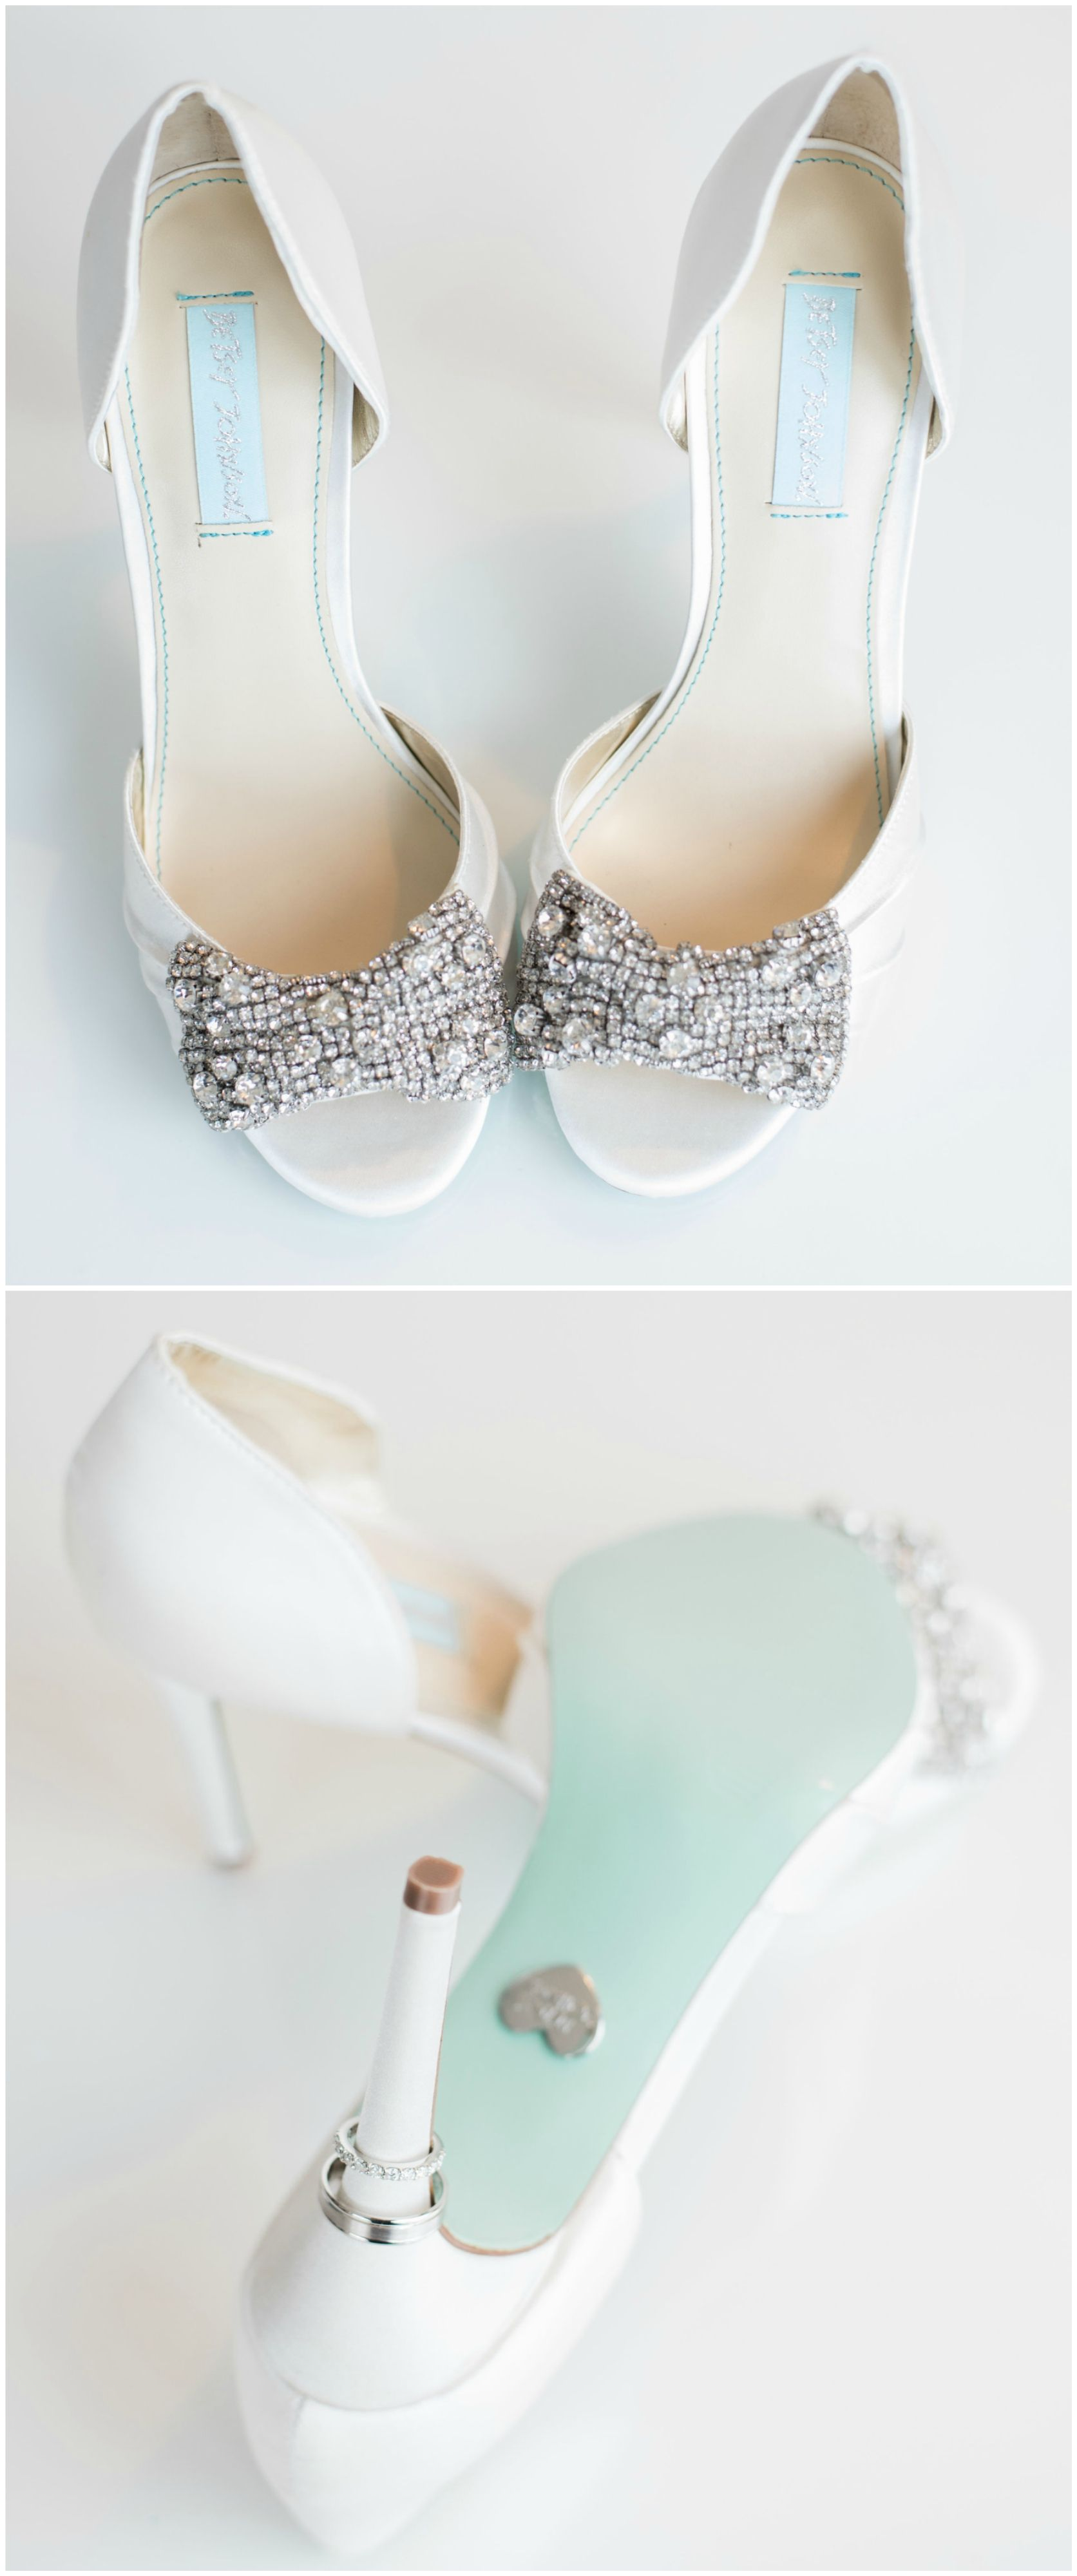 Betsey Johnson Heels Bedazzled Bow Turquoise Sole Wedding Shoes Rowan Wells